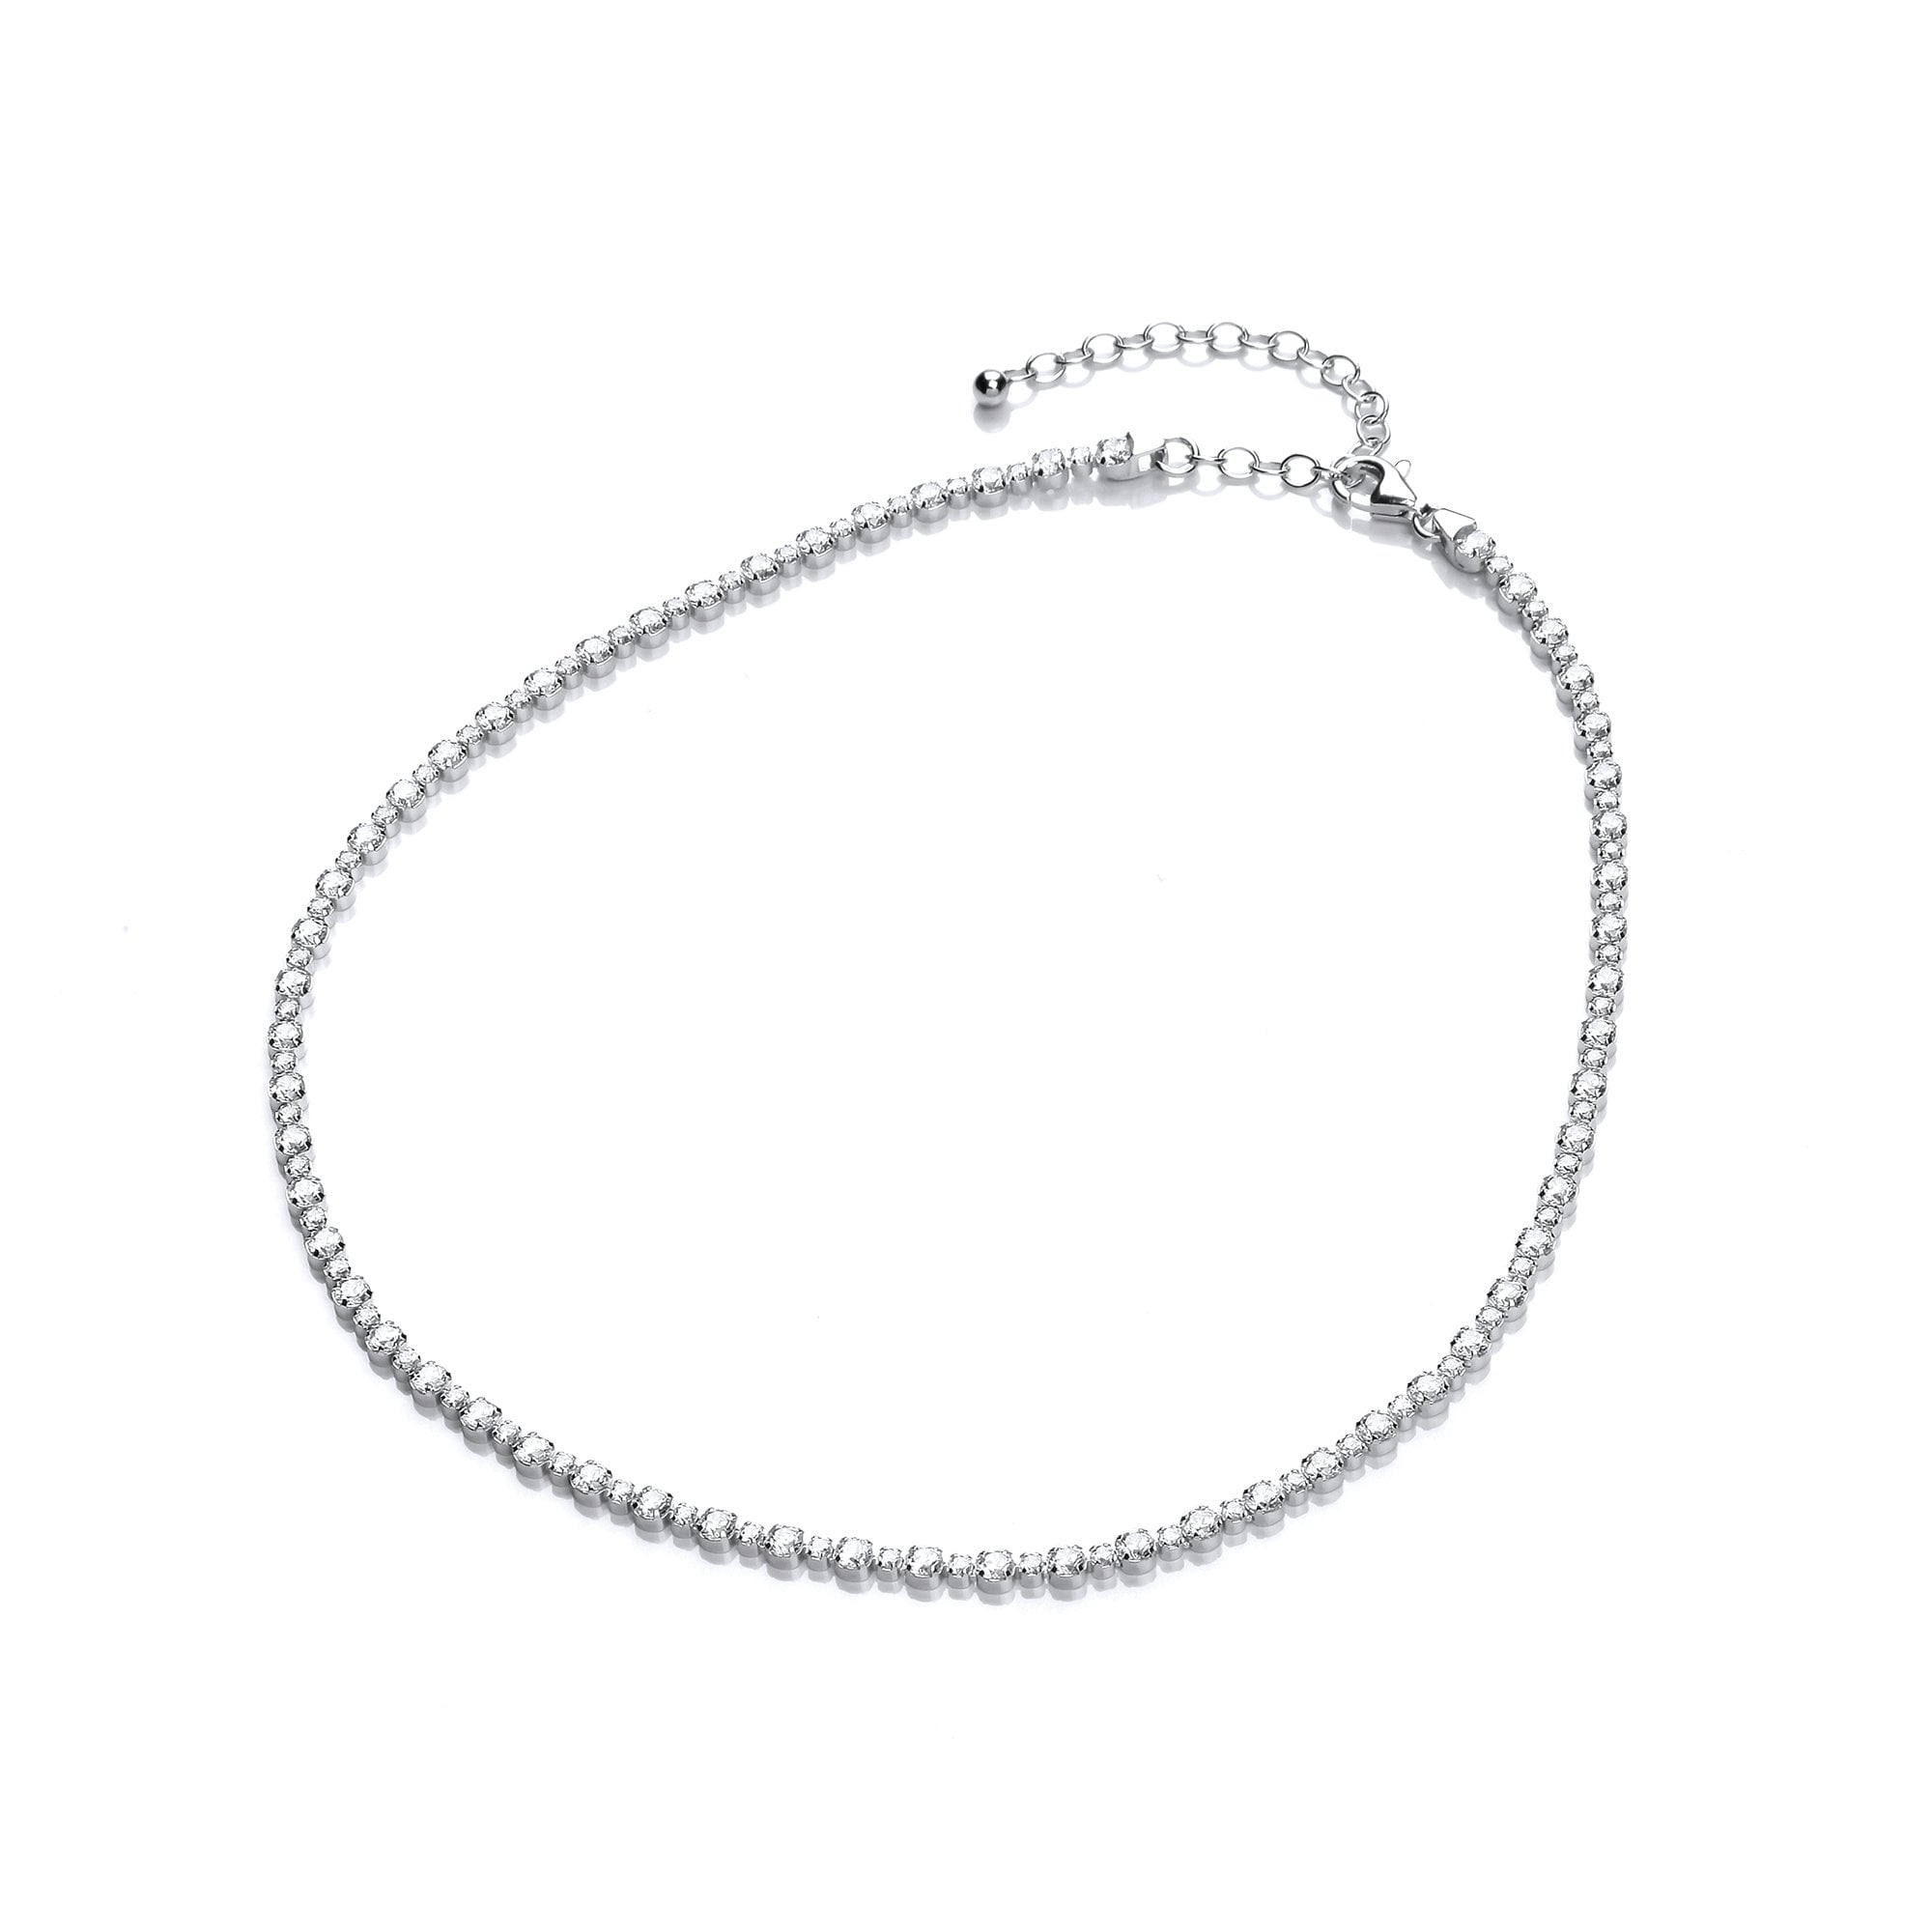 925 sterling silver tennis choker and necklaces